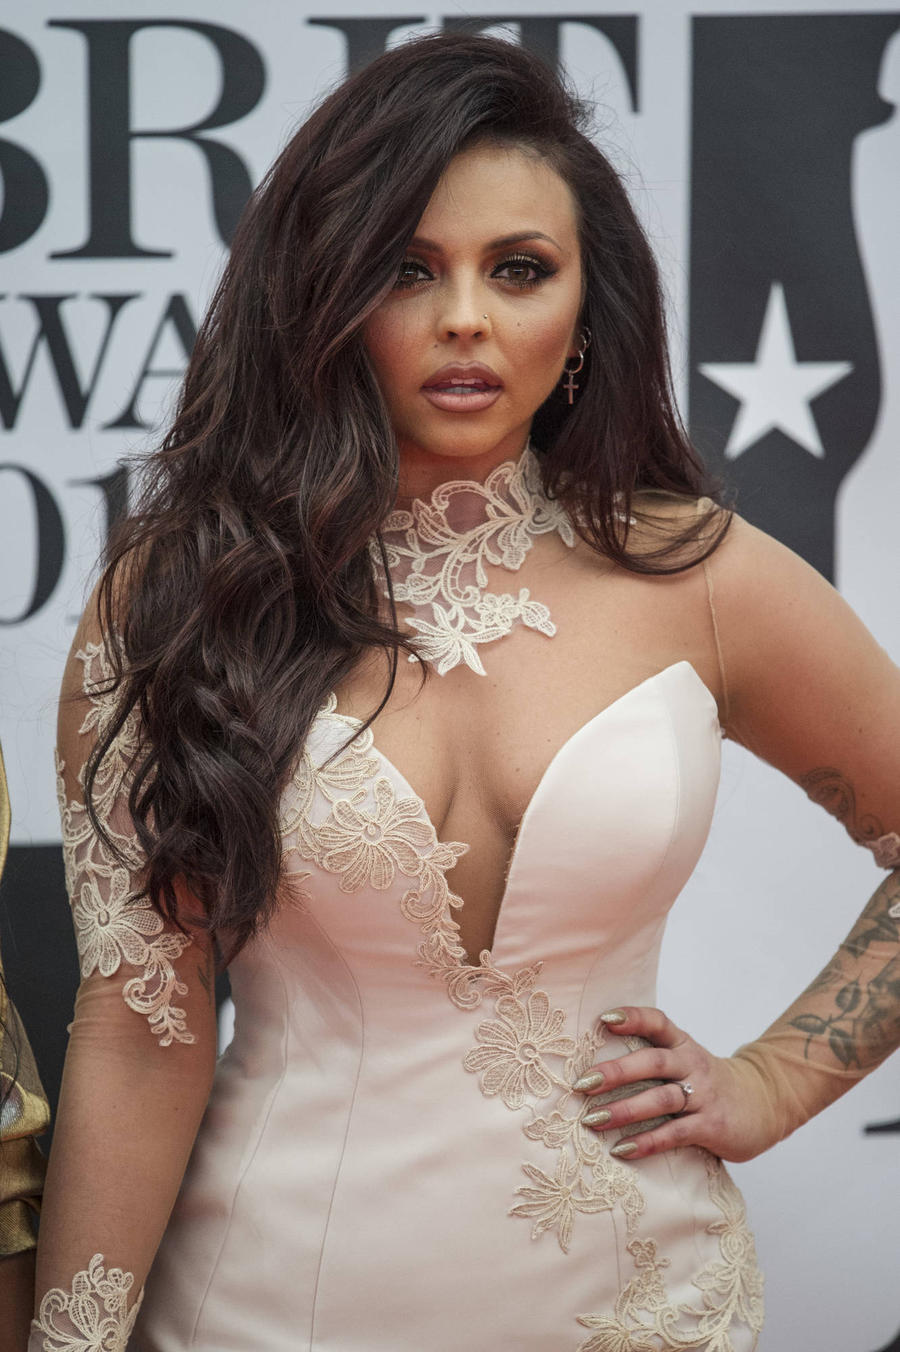 Jesy Nelson Nursing Wrist Injury